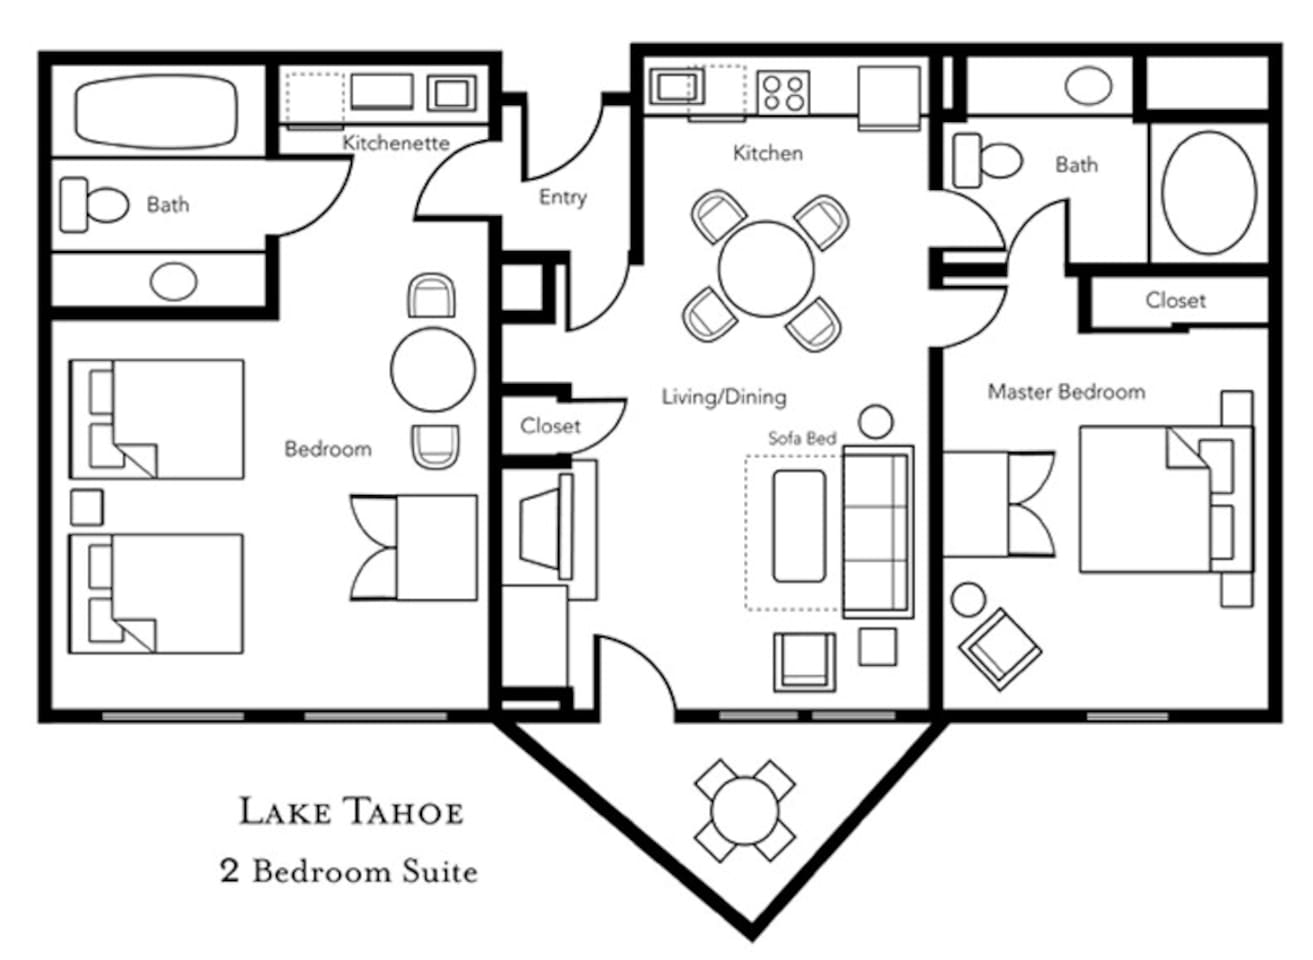 Lake Tahoe 2 Bedroom Suites 2bdm Sleeps 8 Lake Tahoe Resort4 Condominiums For Rent In South